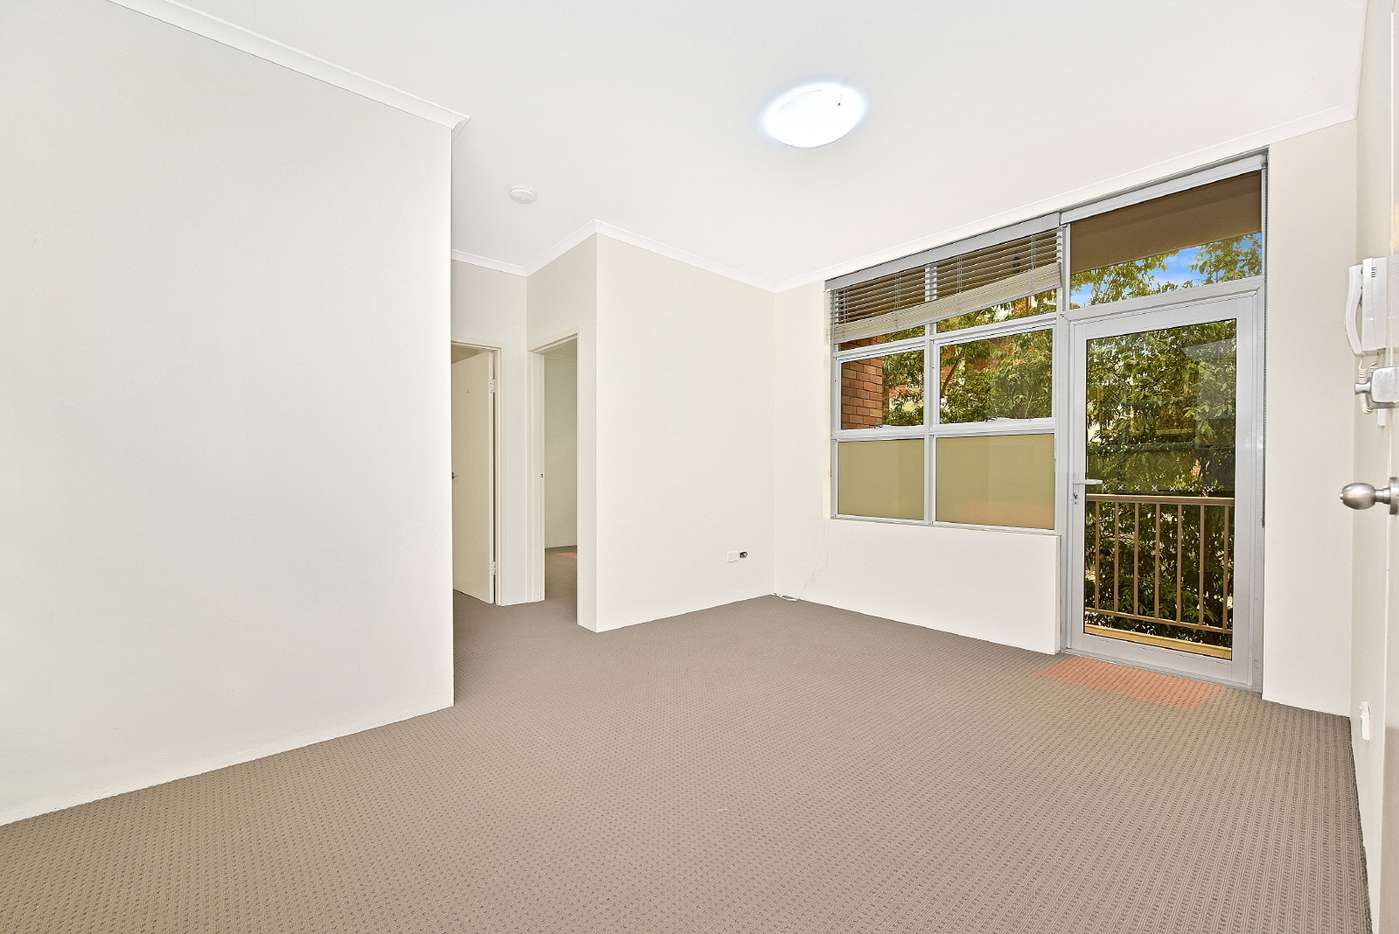 Main view of Homely apartment listing, 13/153 Smith Street, Summer Hill, NSW 2130